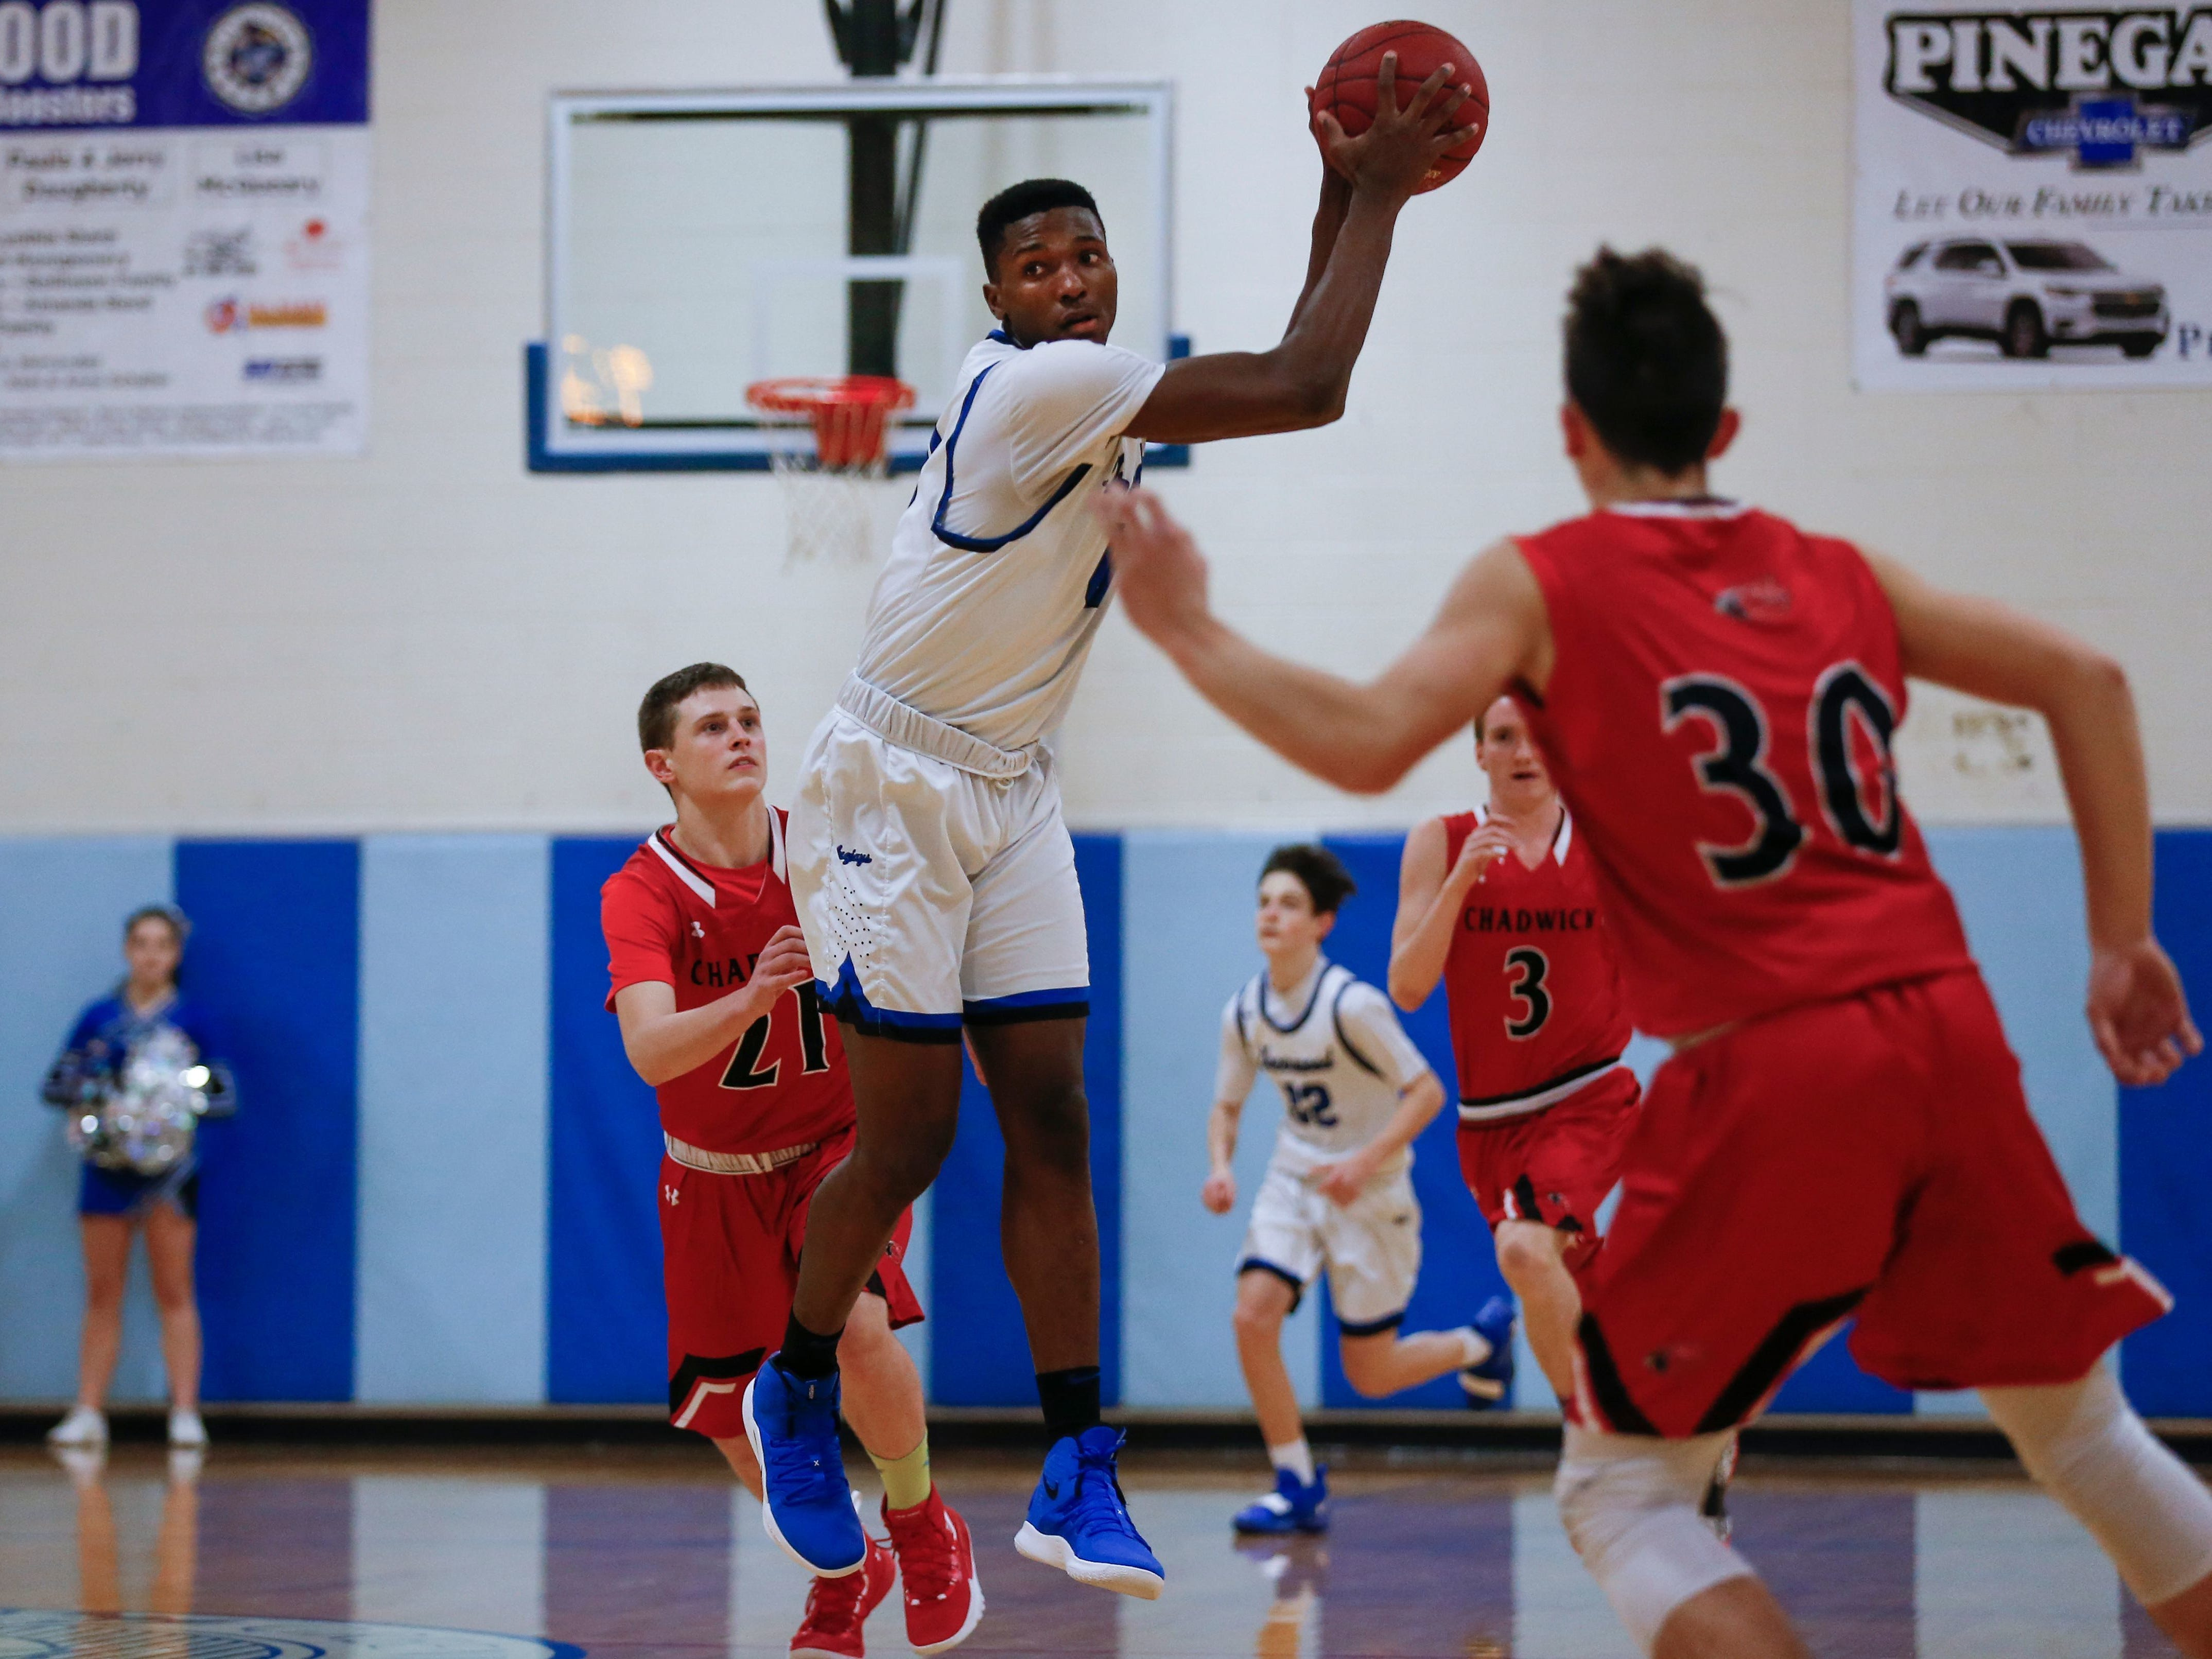 Dec. 4: Aminu Mohammed makes home debut with Greenwood.